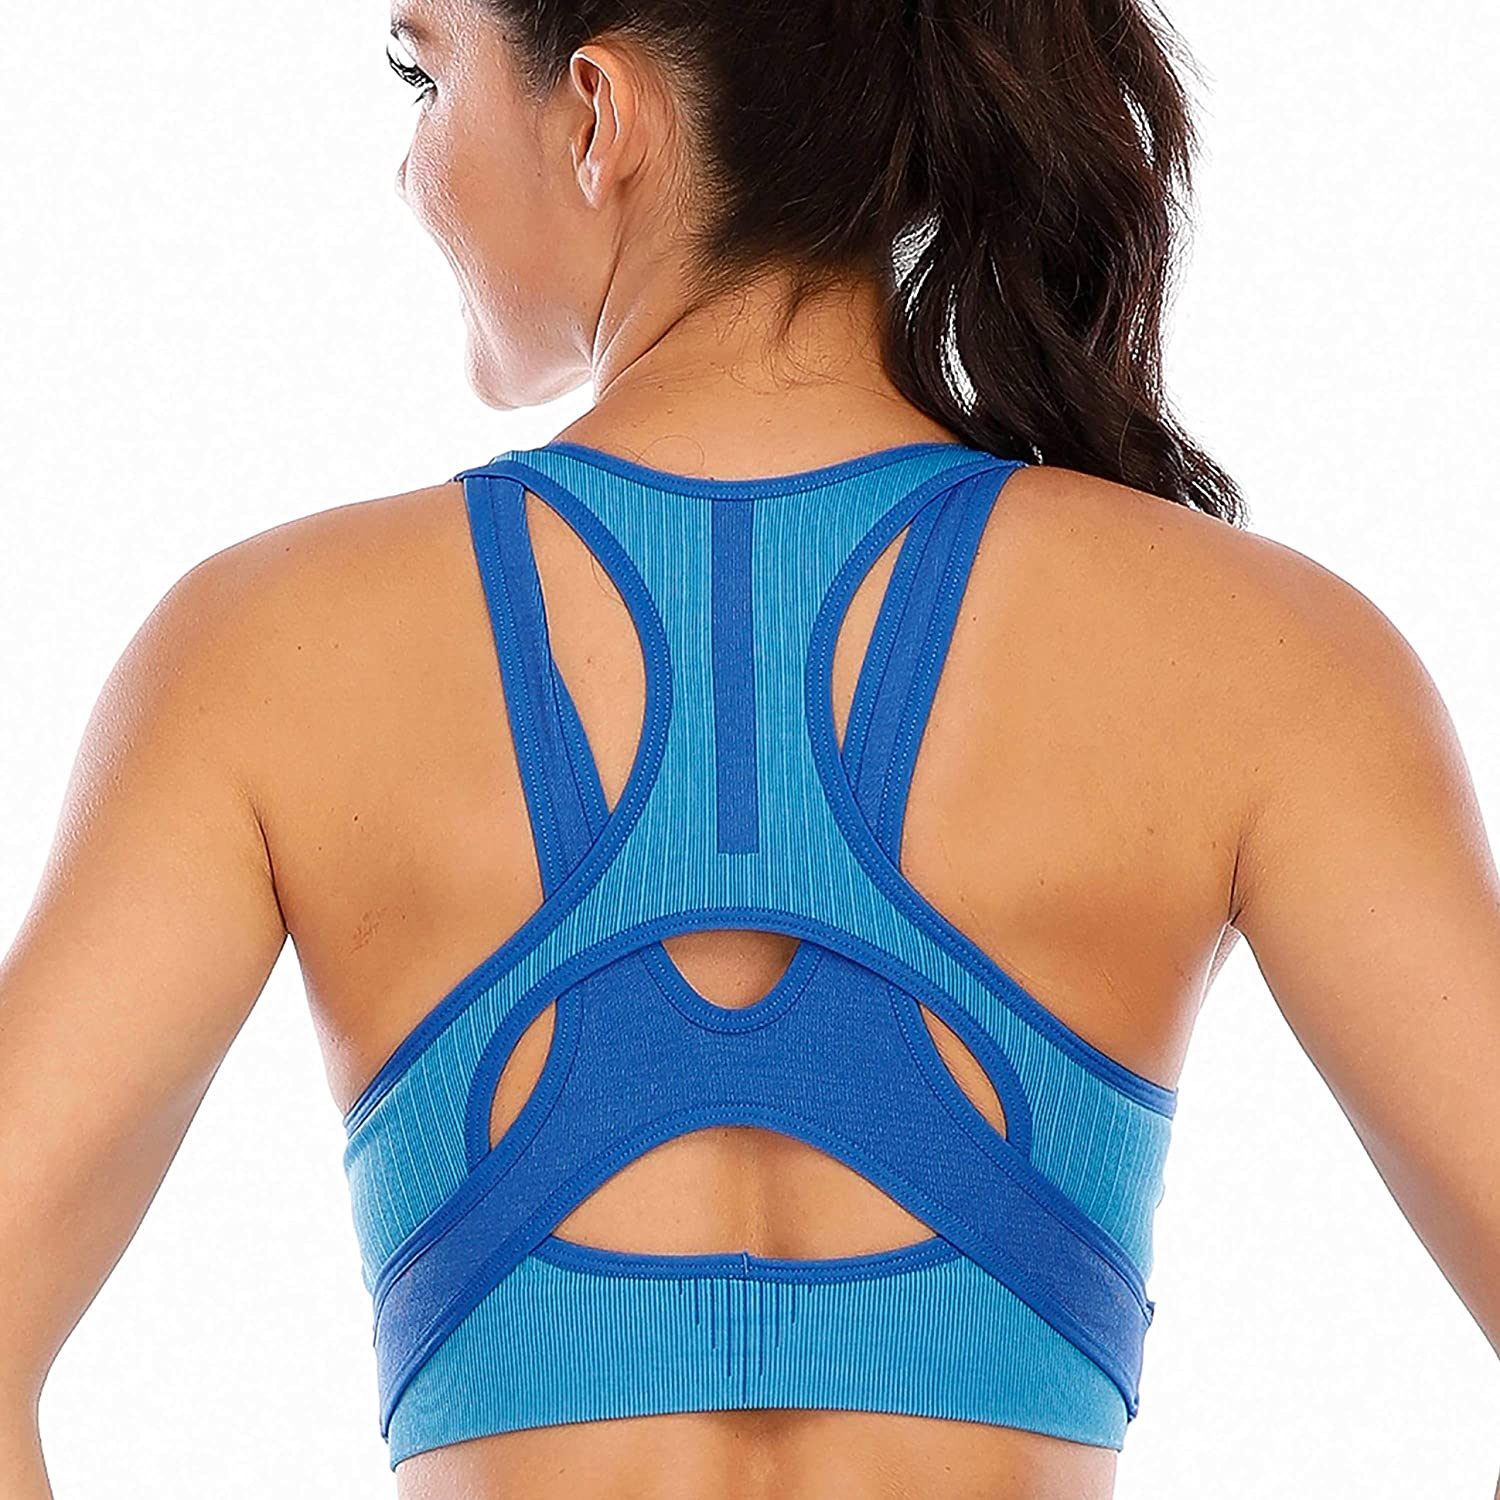 Cordaw Womens Sports Bras Racerback Crop Top for Gym Seamless Workout Bra Yoga Tops Padded Medium Support Bounce Control